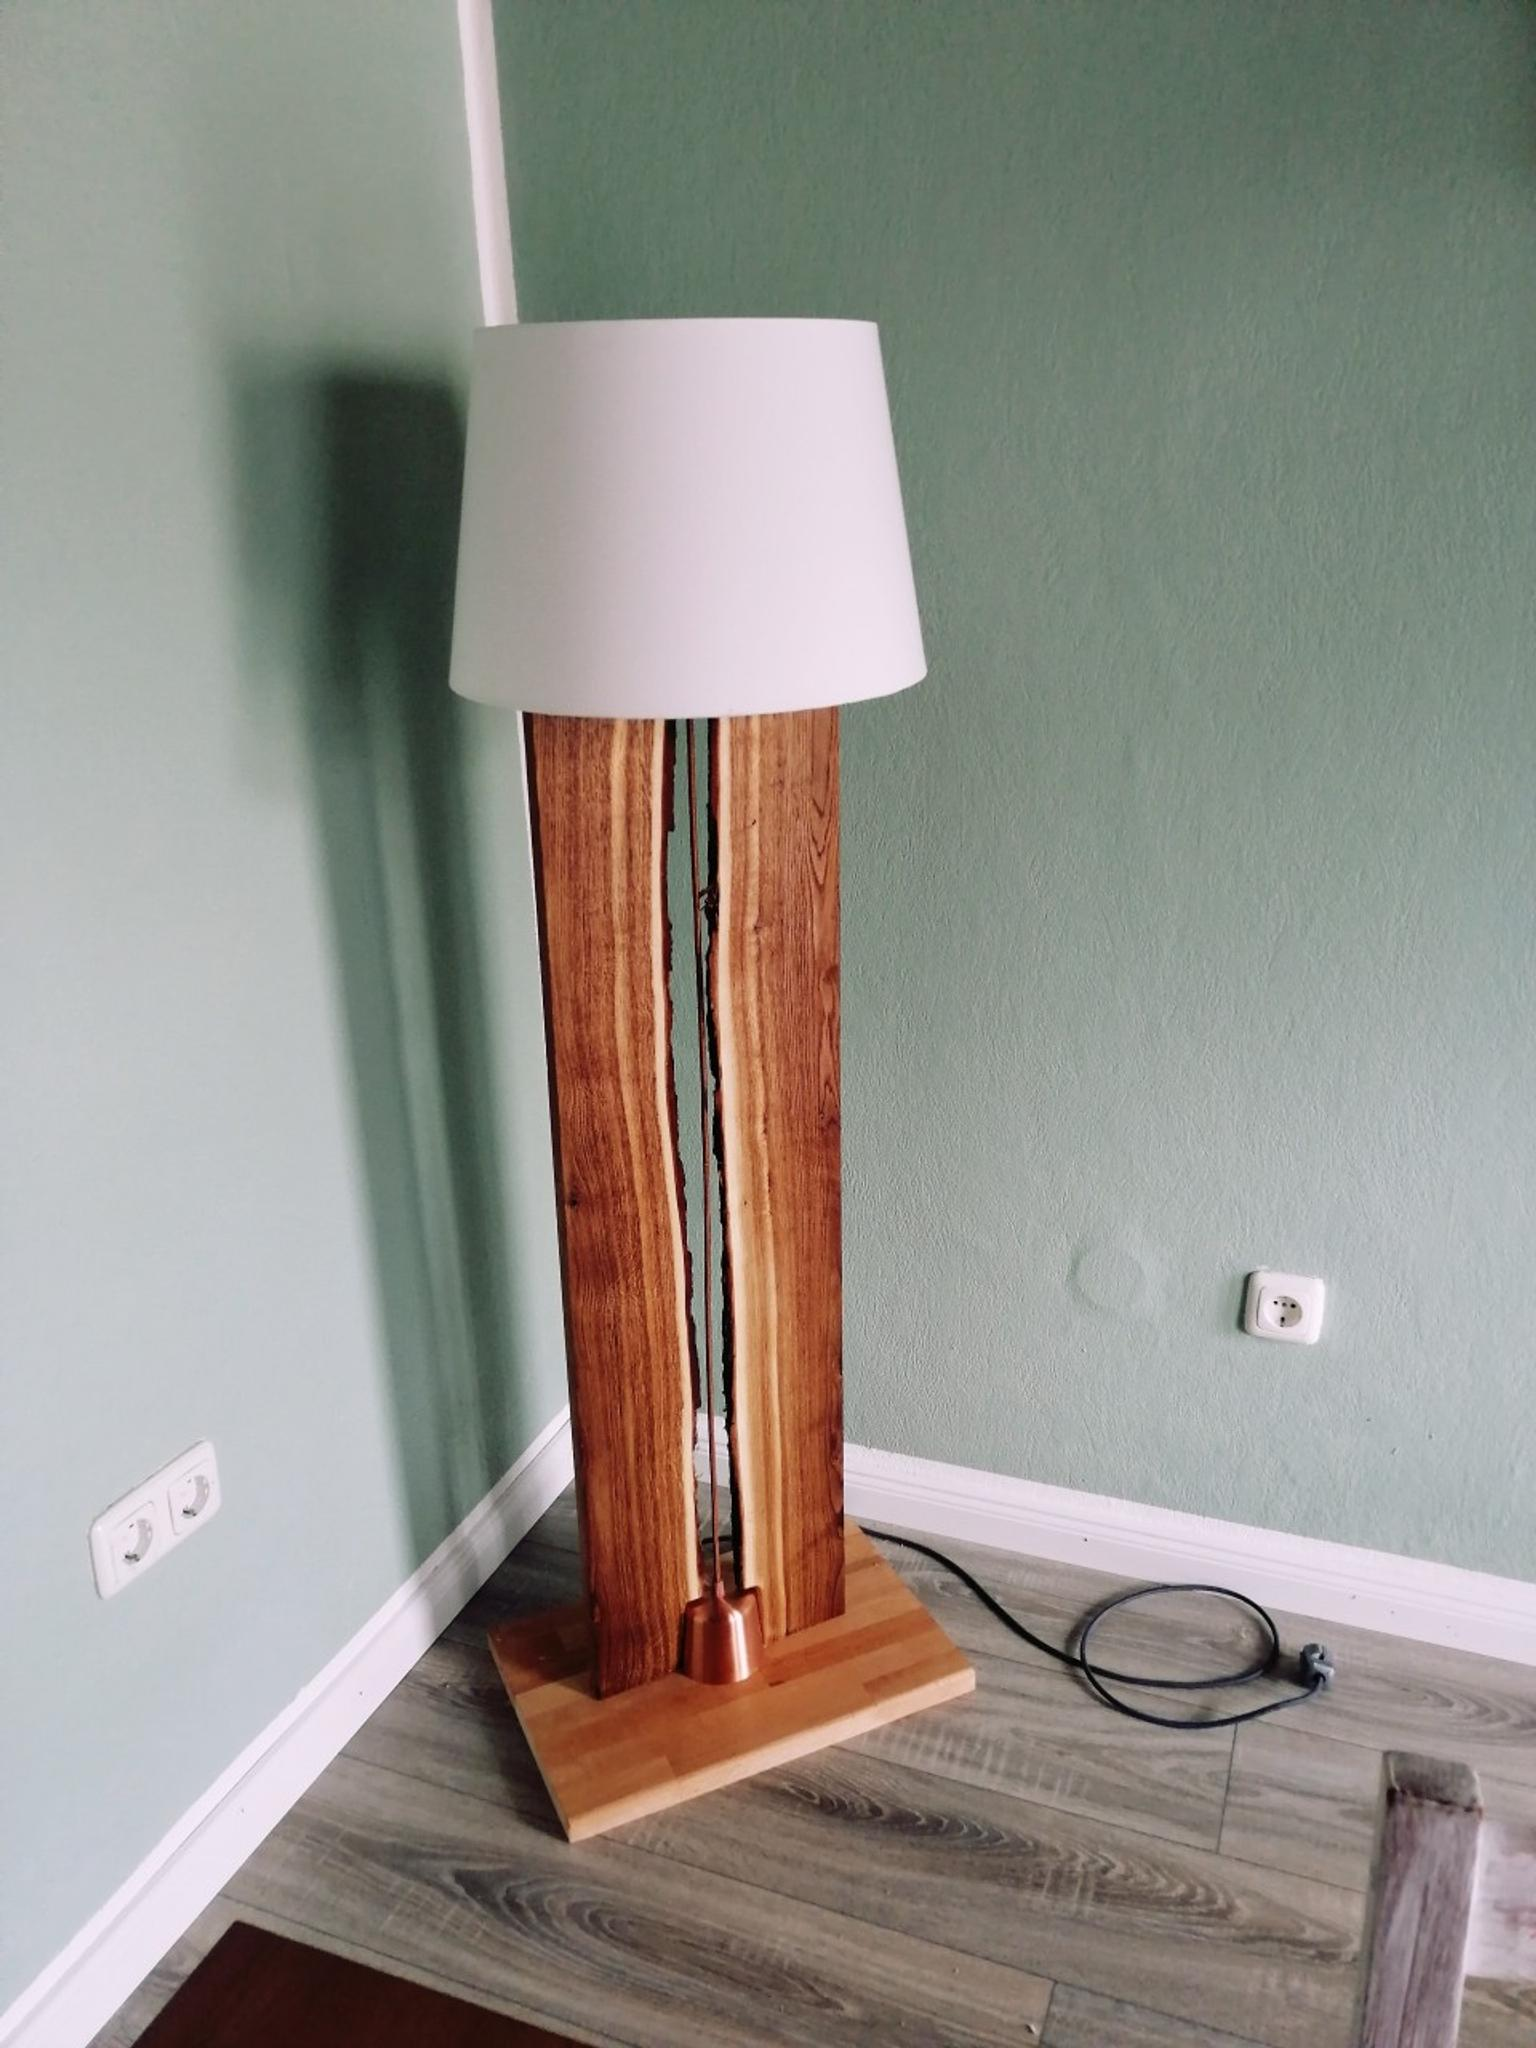 Diy Stehlampe Holz Natur Lampe In 56337 Arzbach For 69 00